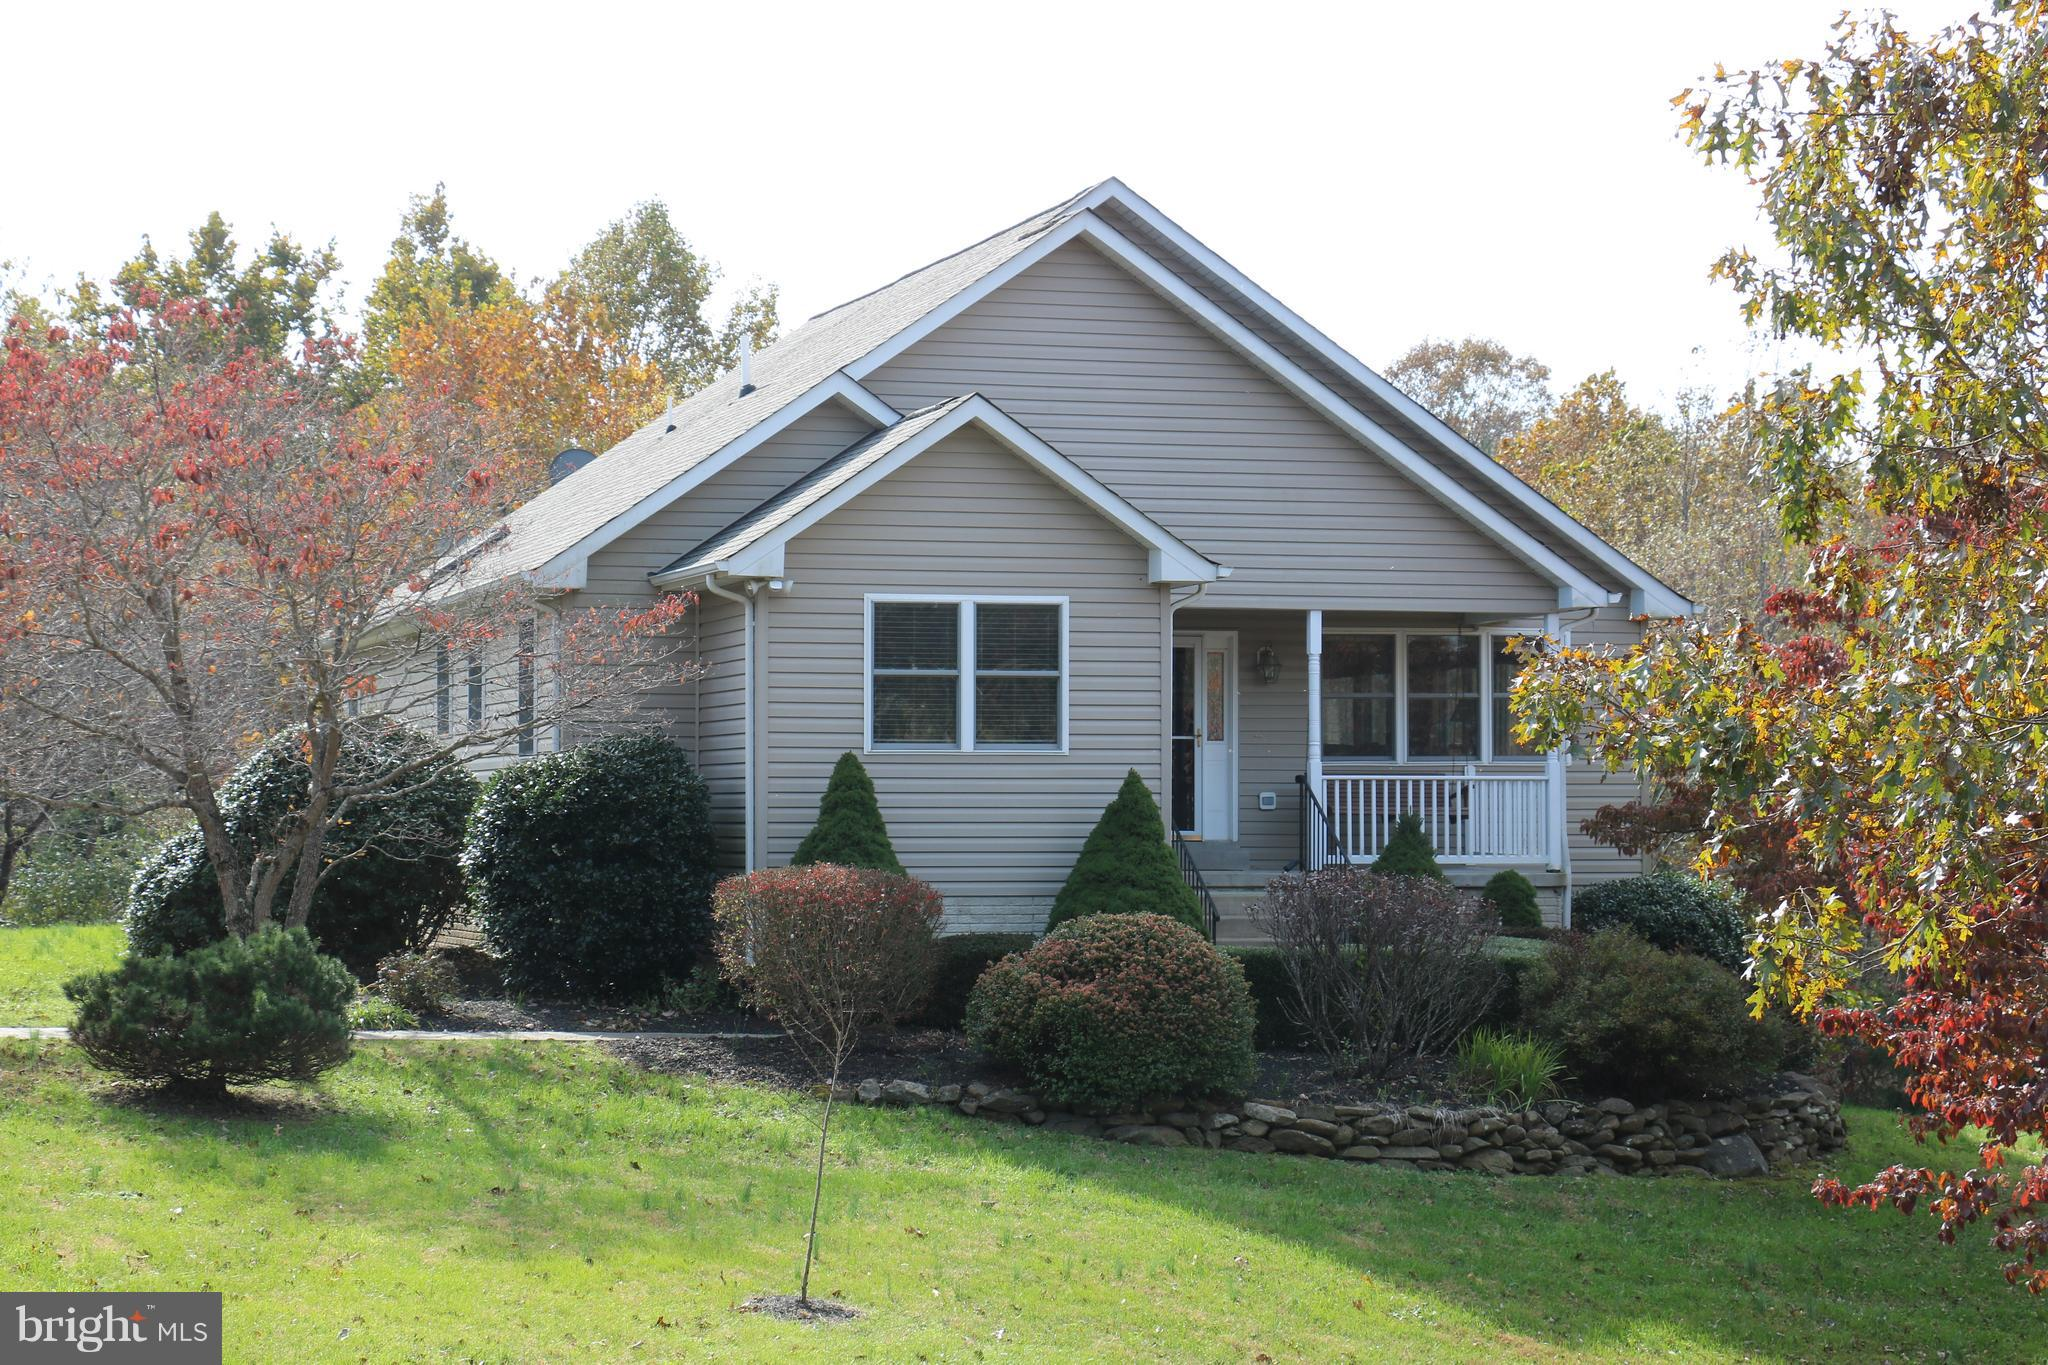 4248 DEER LANE, BOSTON, VA 22713